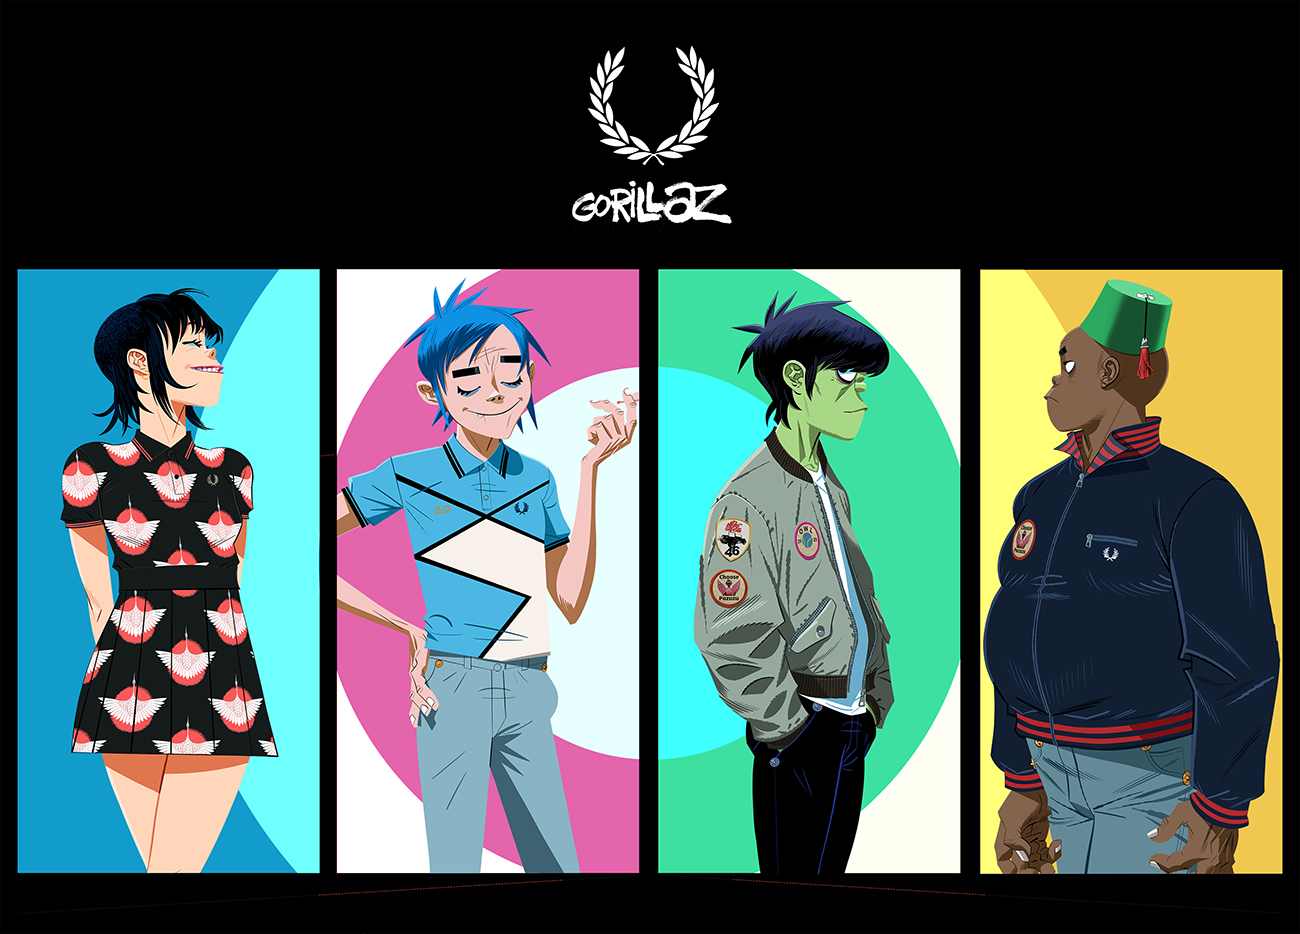 Fred Perry x Gorillaz Collection